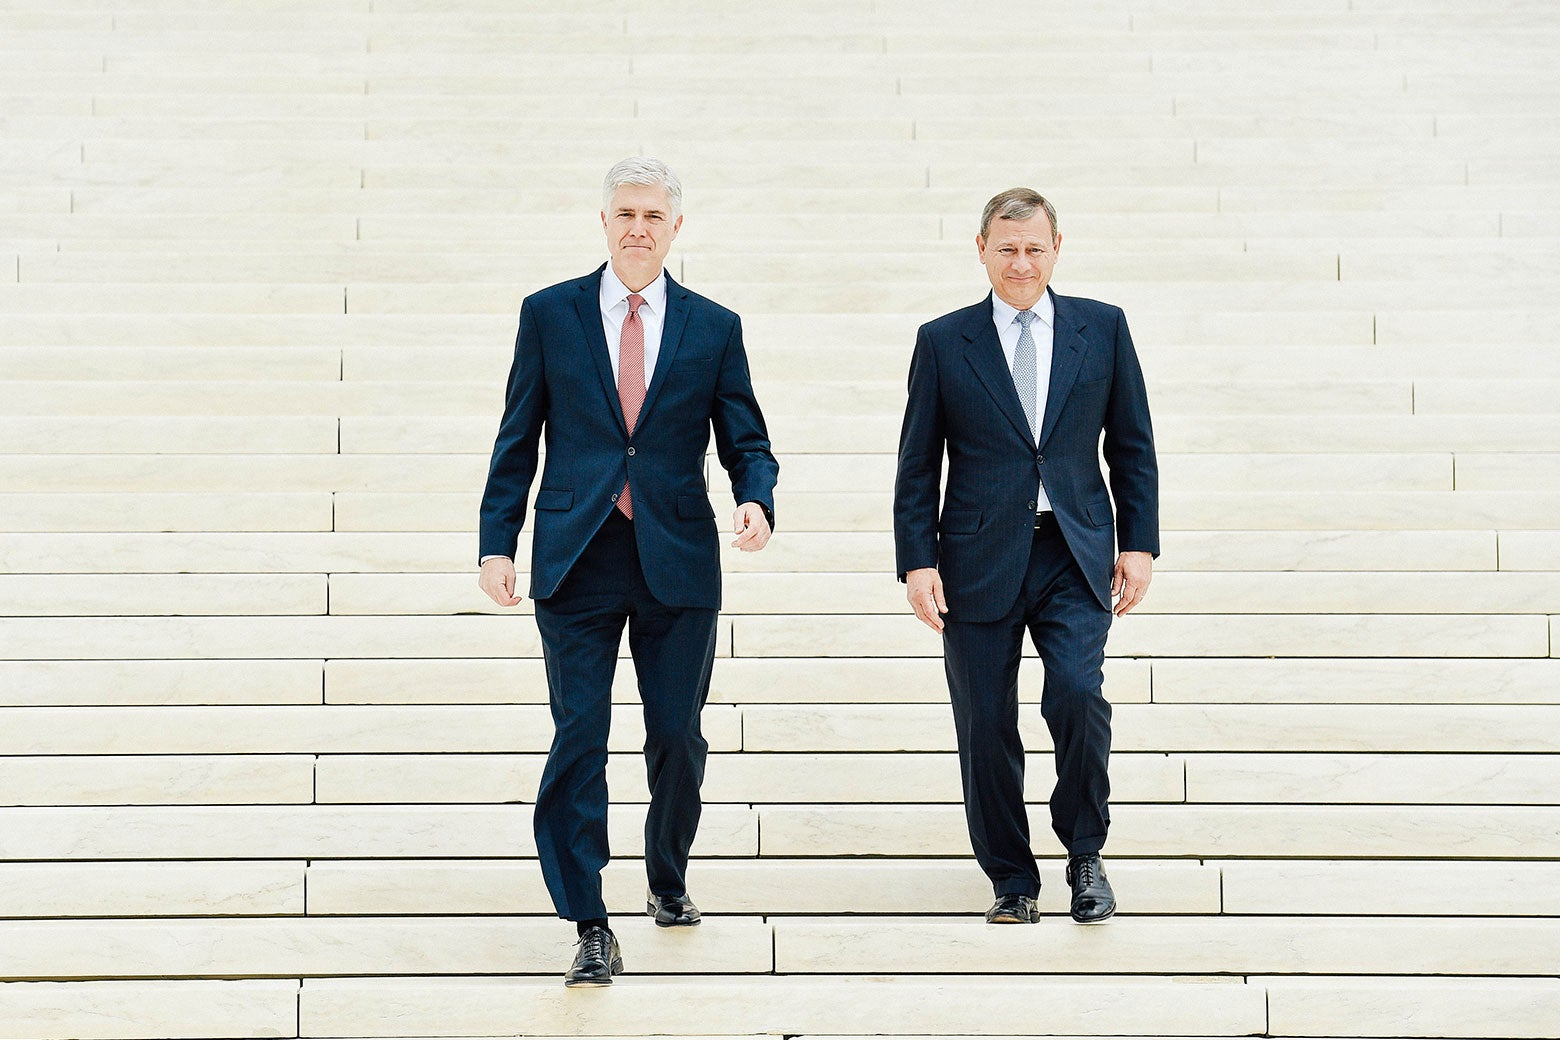 A wide shot of the Supreme Court steps as Gorsuch and Roberts walk down them